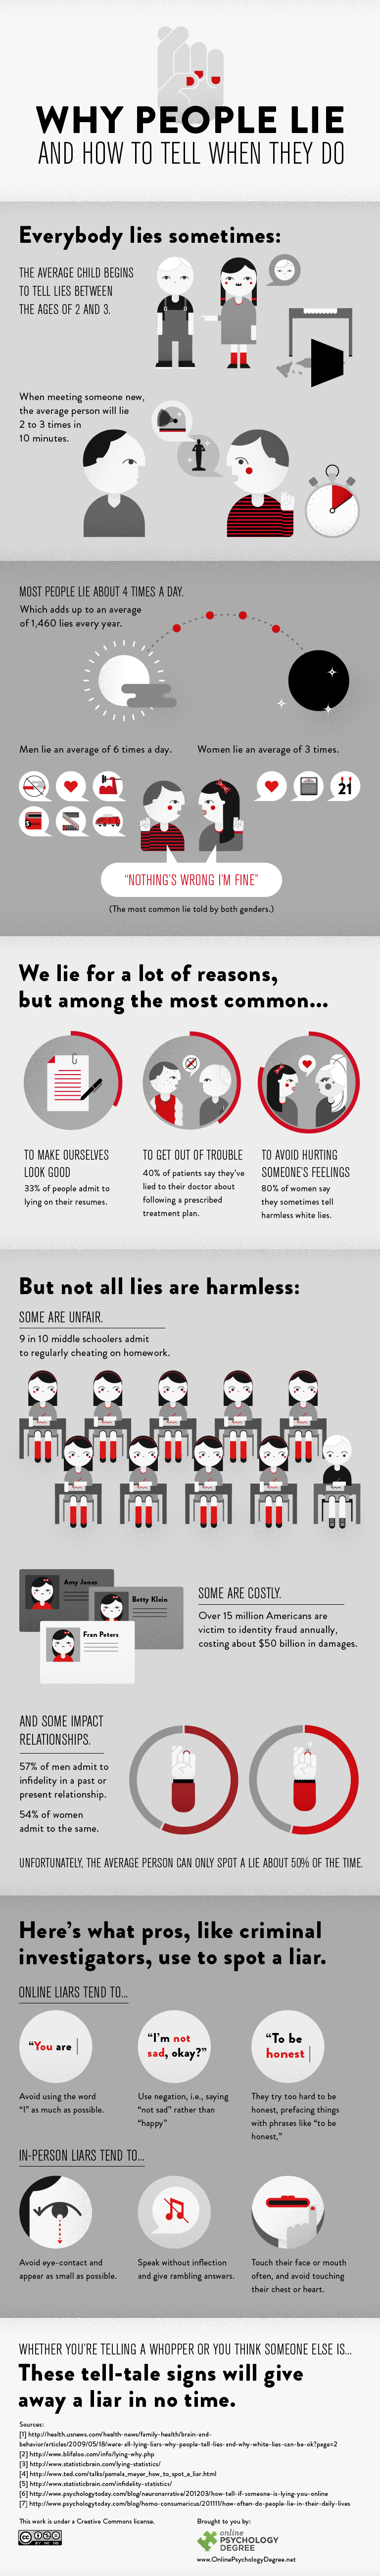 Why People Lie & How To Tell When They Do